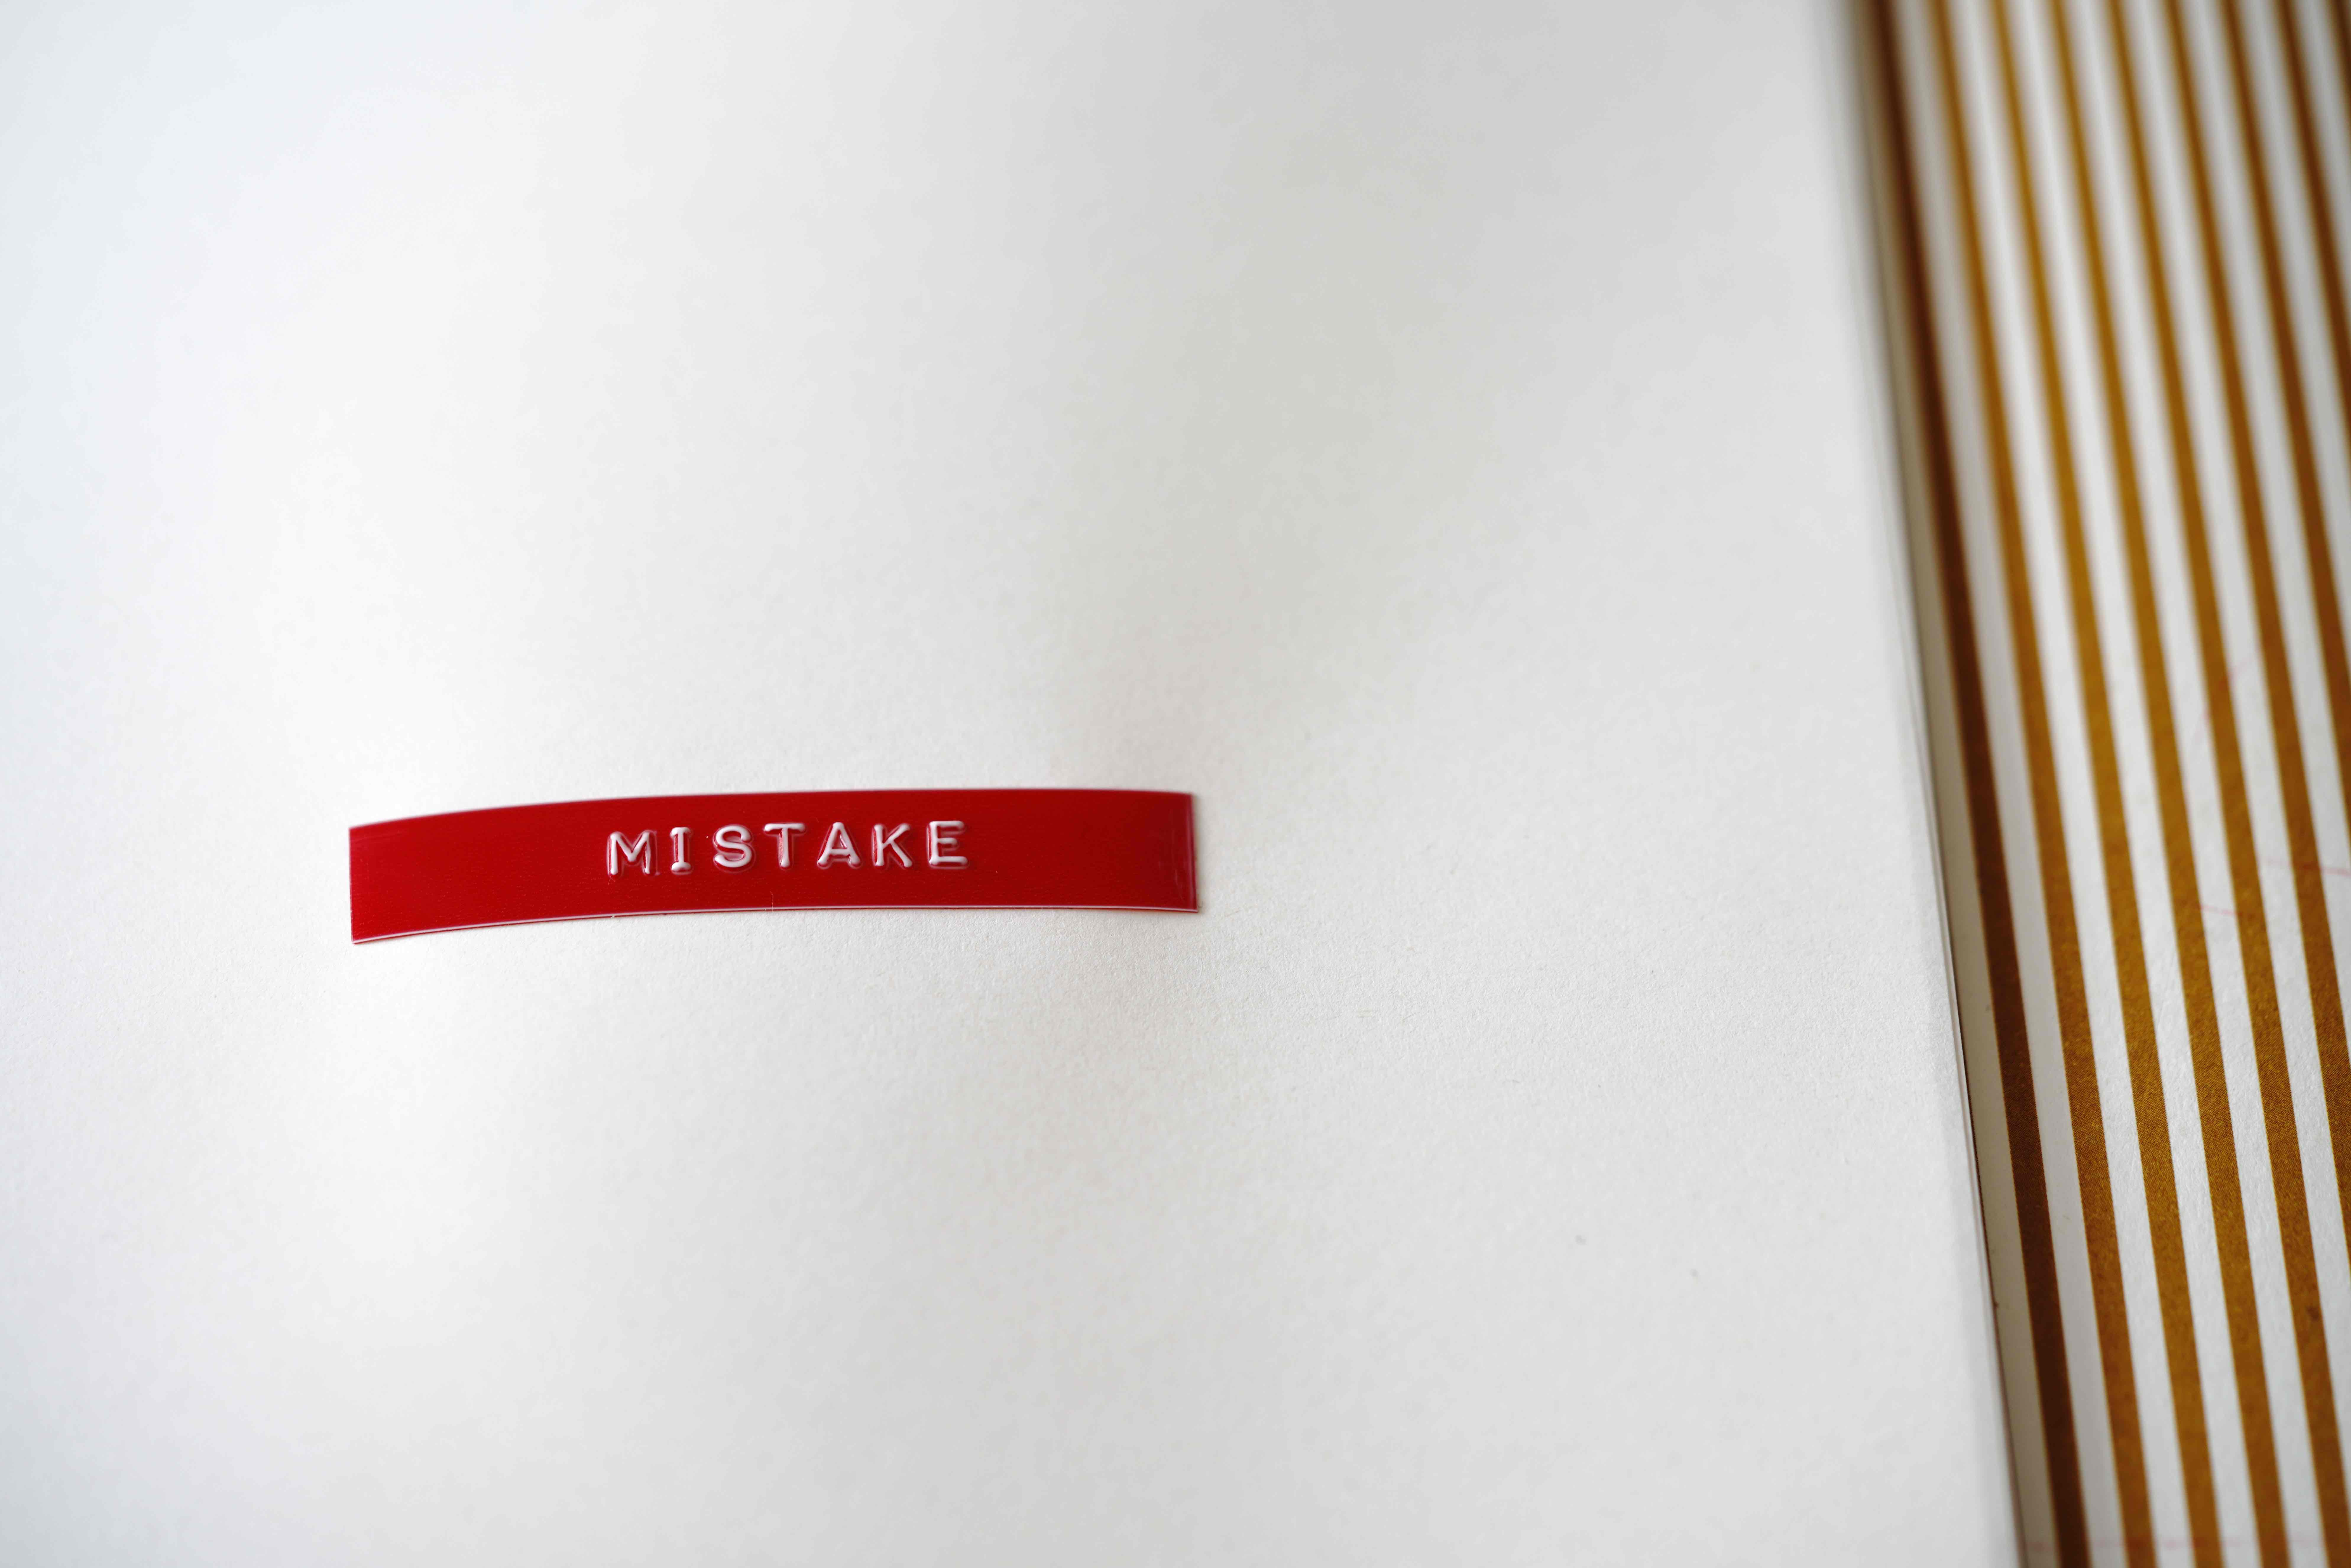 One Pricing Mistake that is very Costly